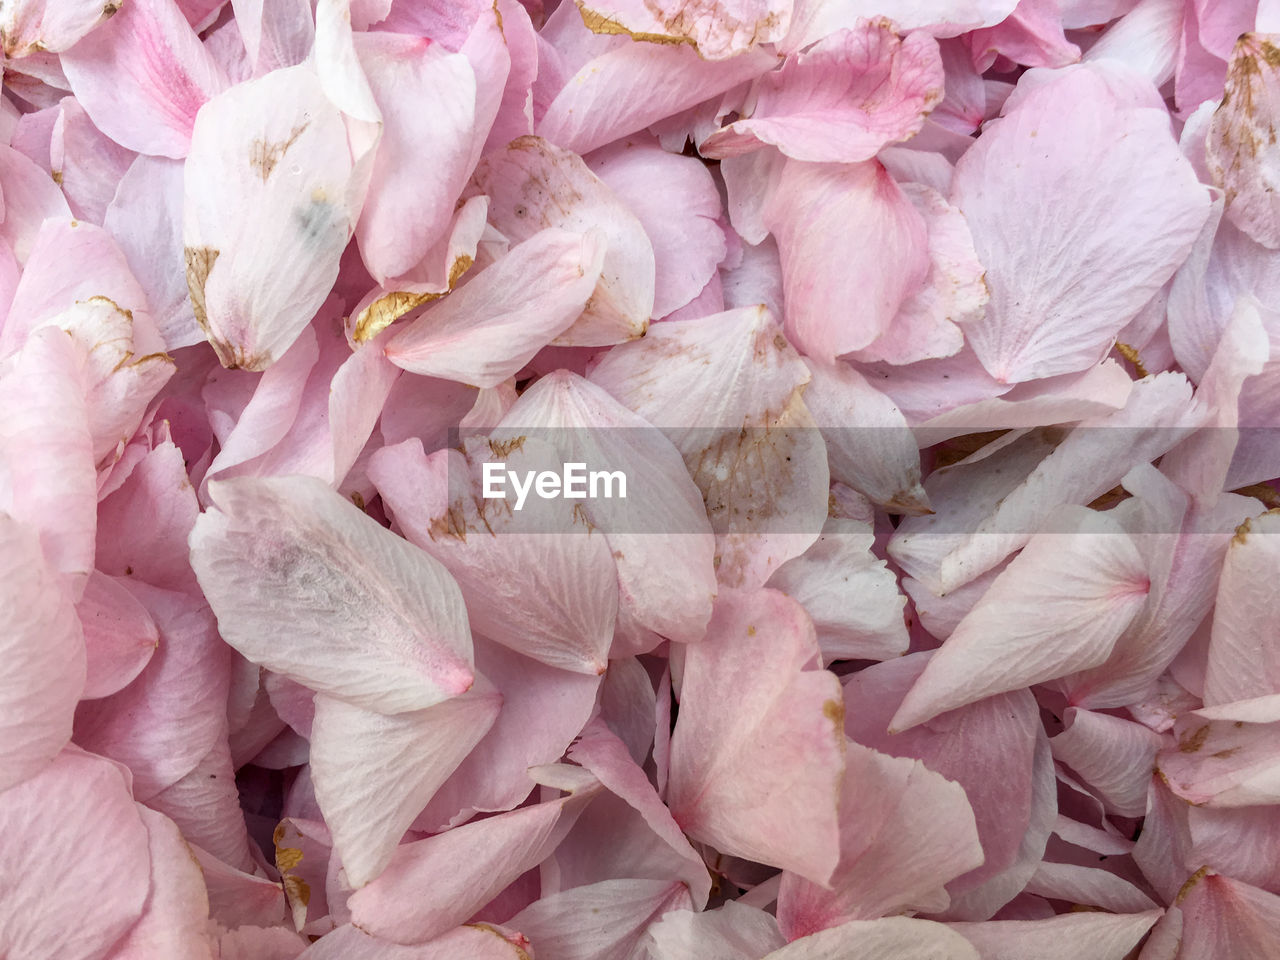 backgrounds, full frame, pink color, freshness, flower, flowering plant, beauty in nature, fragility, petal, close-up, vulnerability, no people, plant, flower head, inflorescence, abundance, nature, day, large group of objects, botany, softness